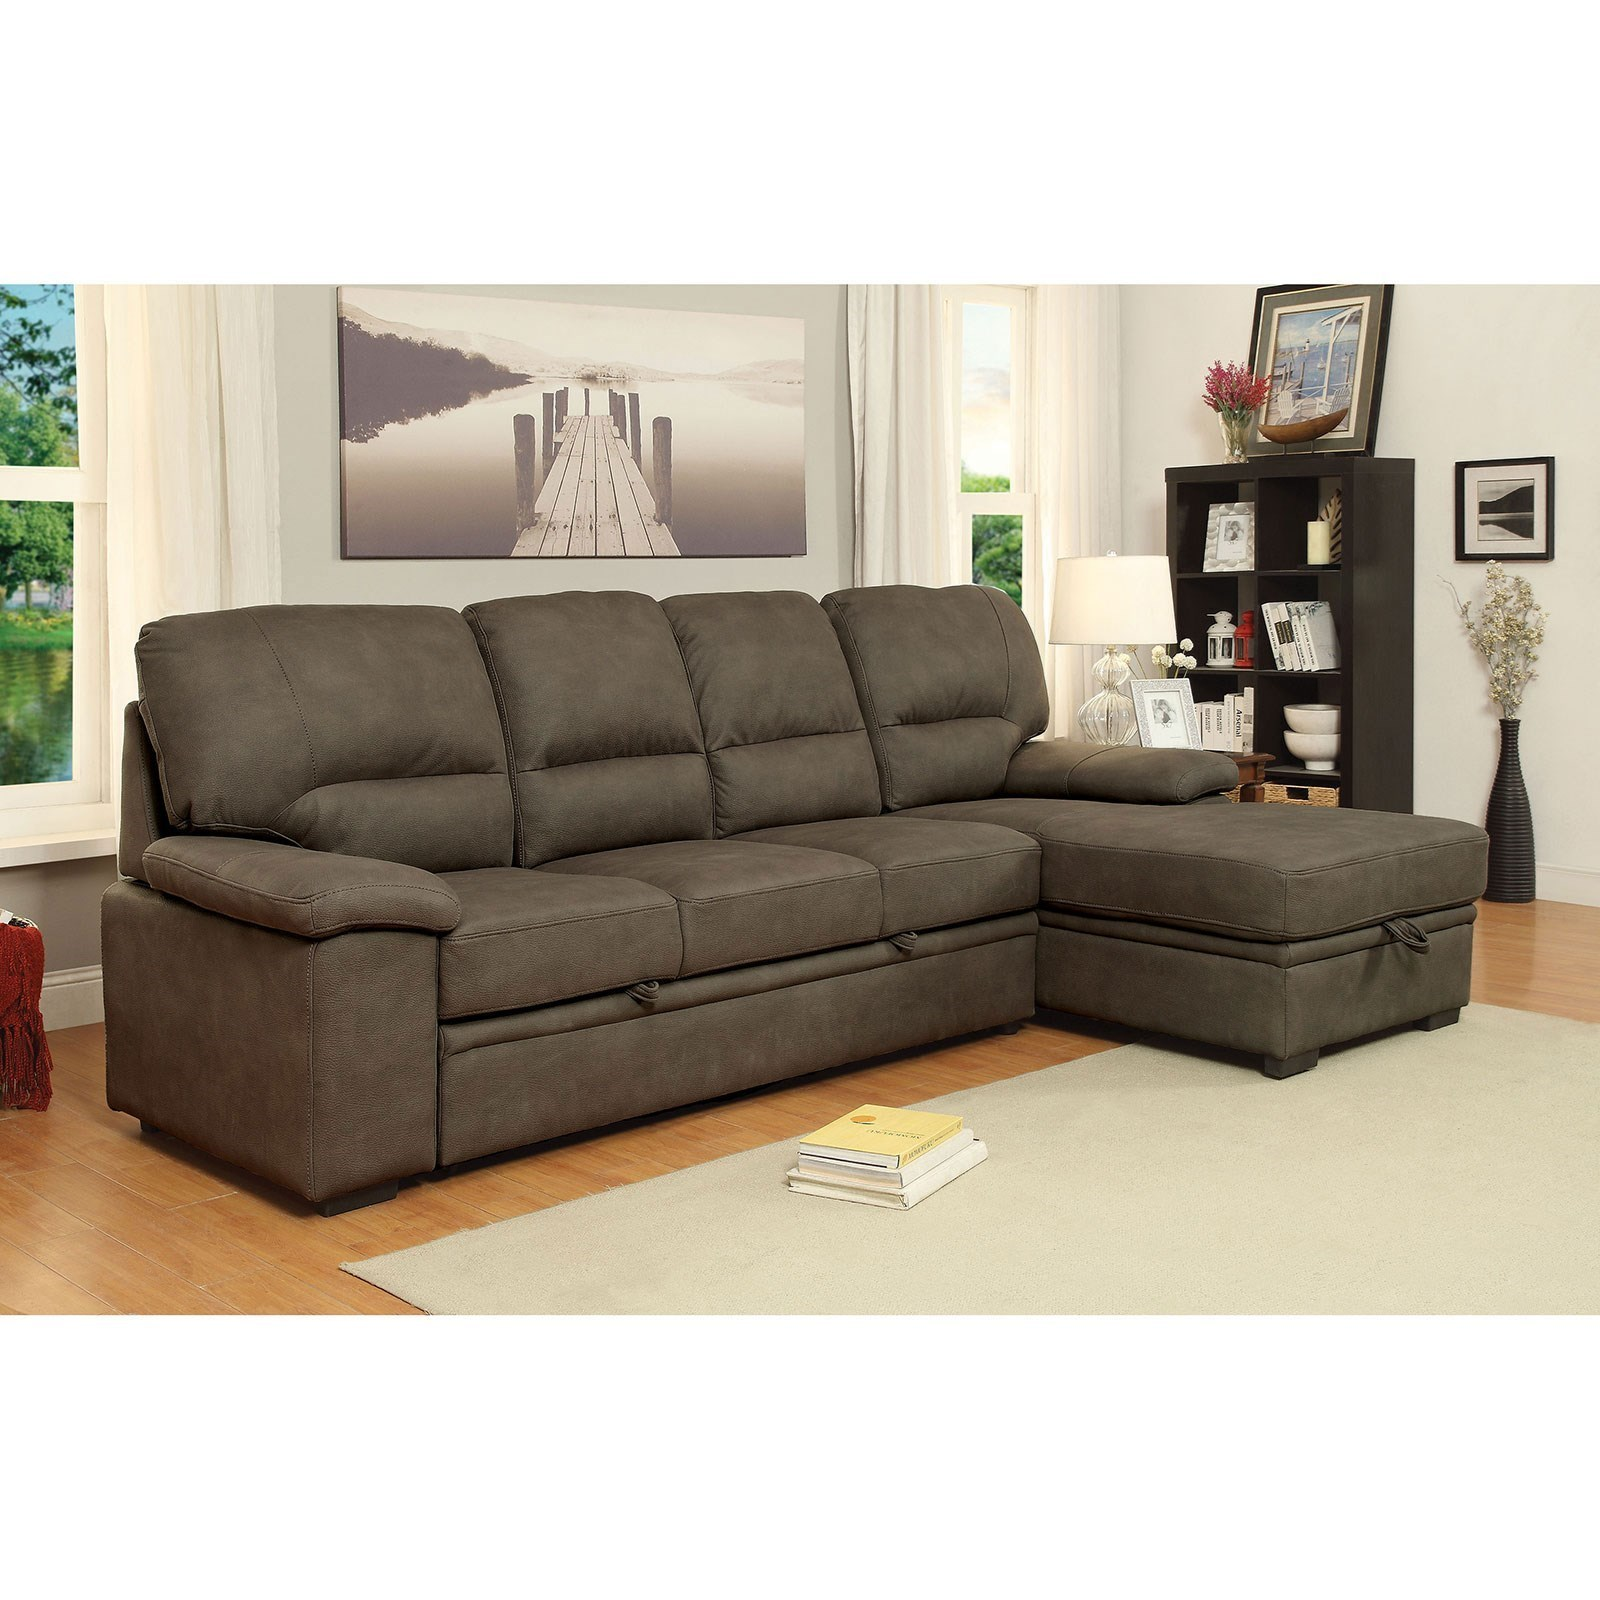 Furniture of America Alcester 4 Seat Sectional Sofa with Sleeper and ...